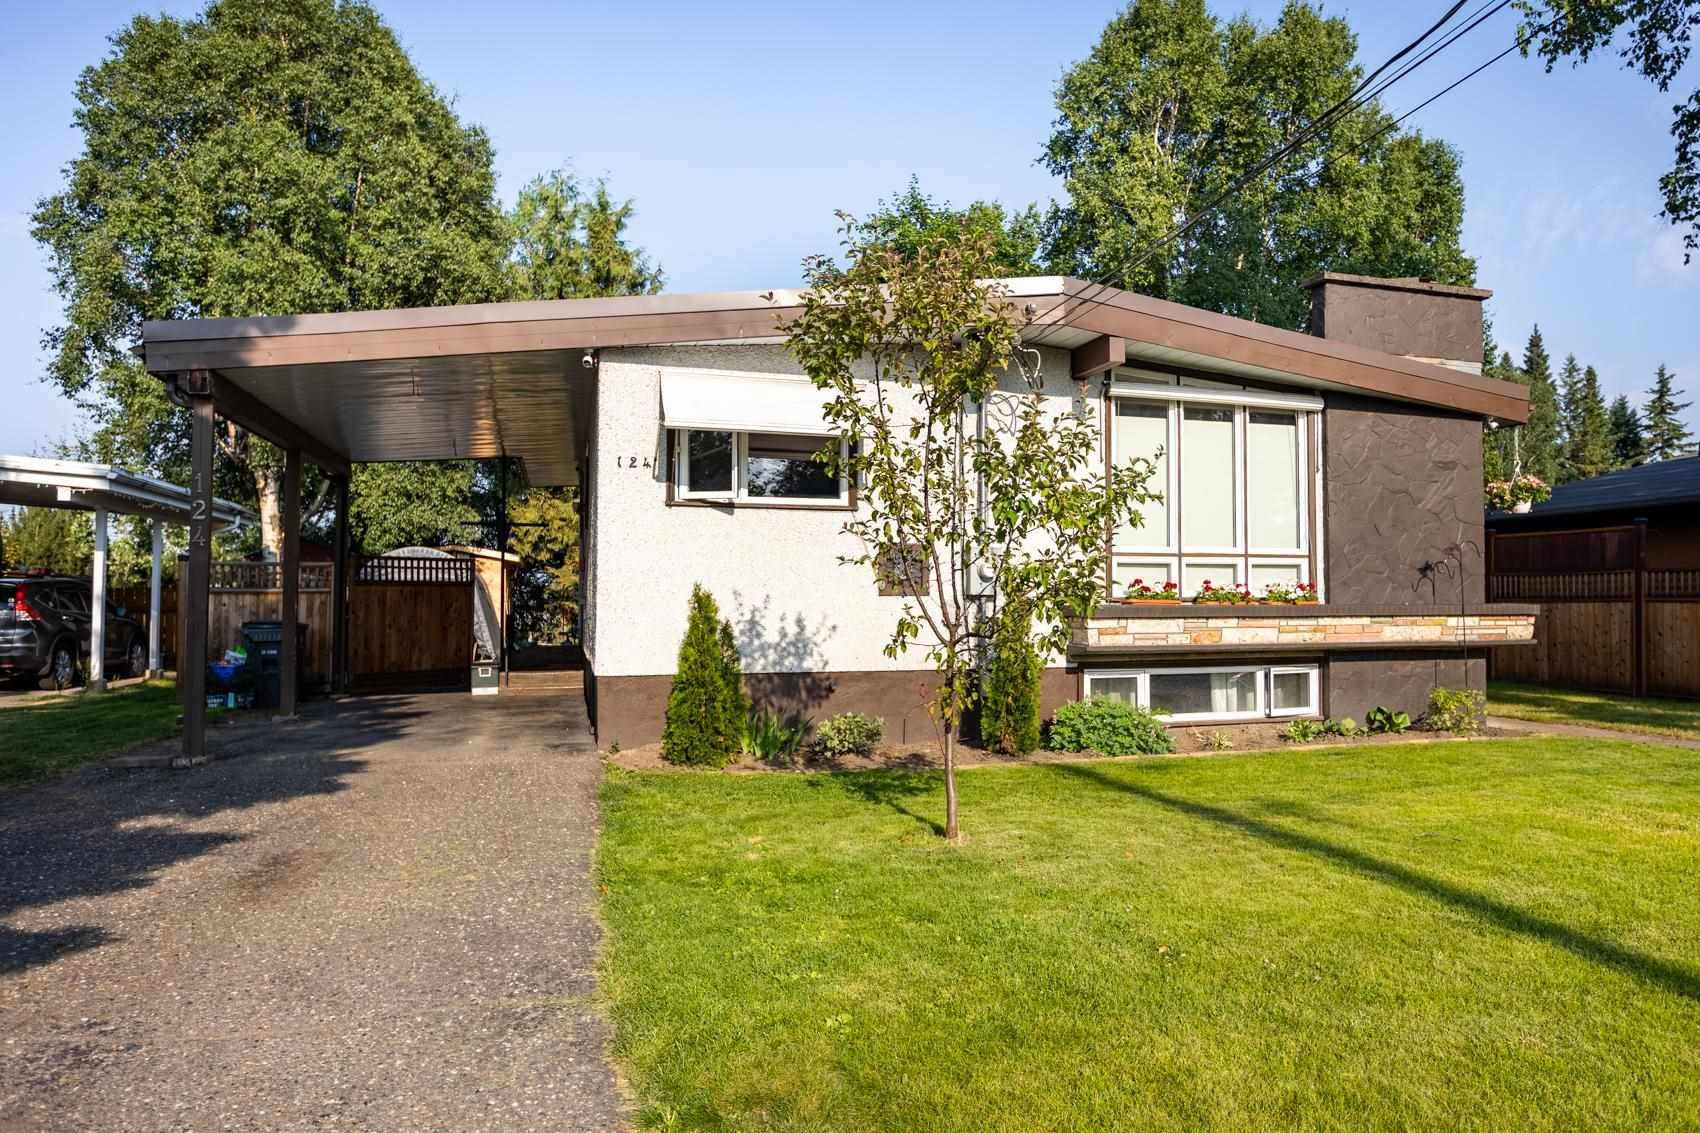 """Main Photo: 124 DOUGLAS Street in Prince George: Nechako View House for sale in """"NECHAKO VIEW"""" (PG City Central (Zone 72))  : MLS®# R2601406"""